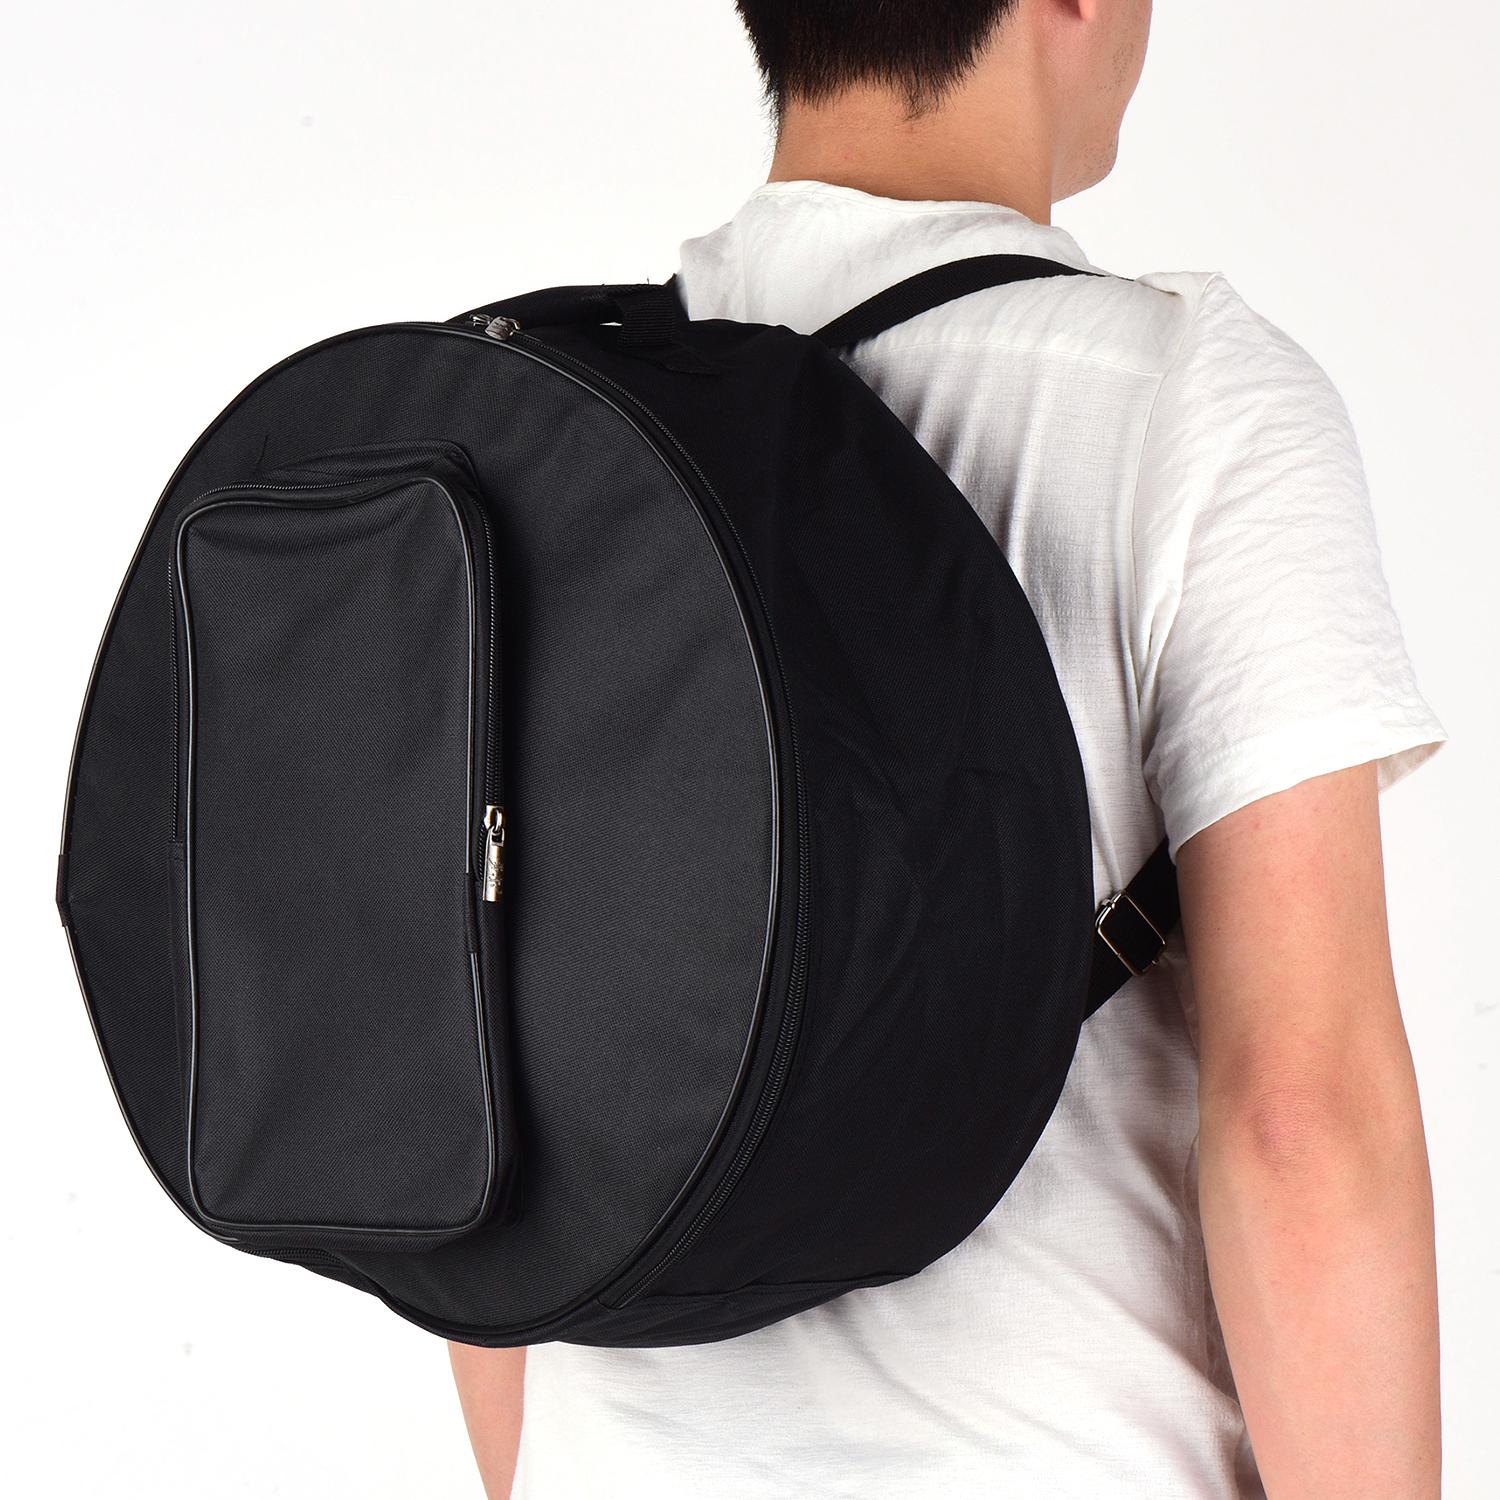 Muslady Snare Drum Bag Compact Backpack Case with Shoulder Strap Outside Pockets Musical Instrument Accessory Black